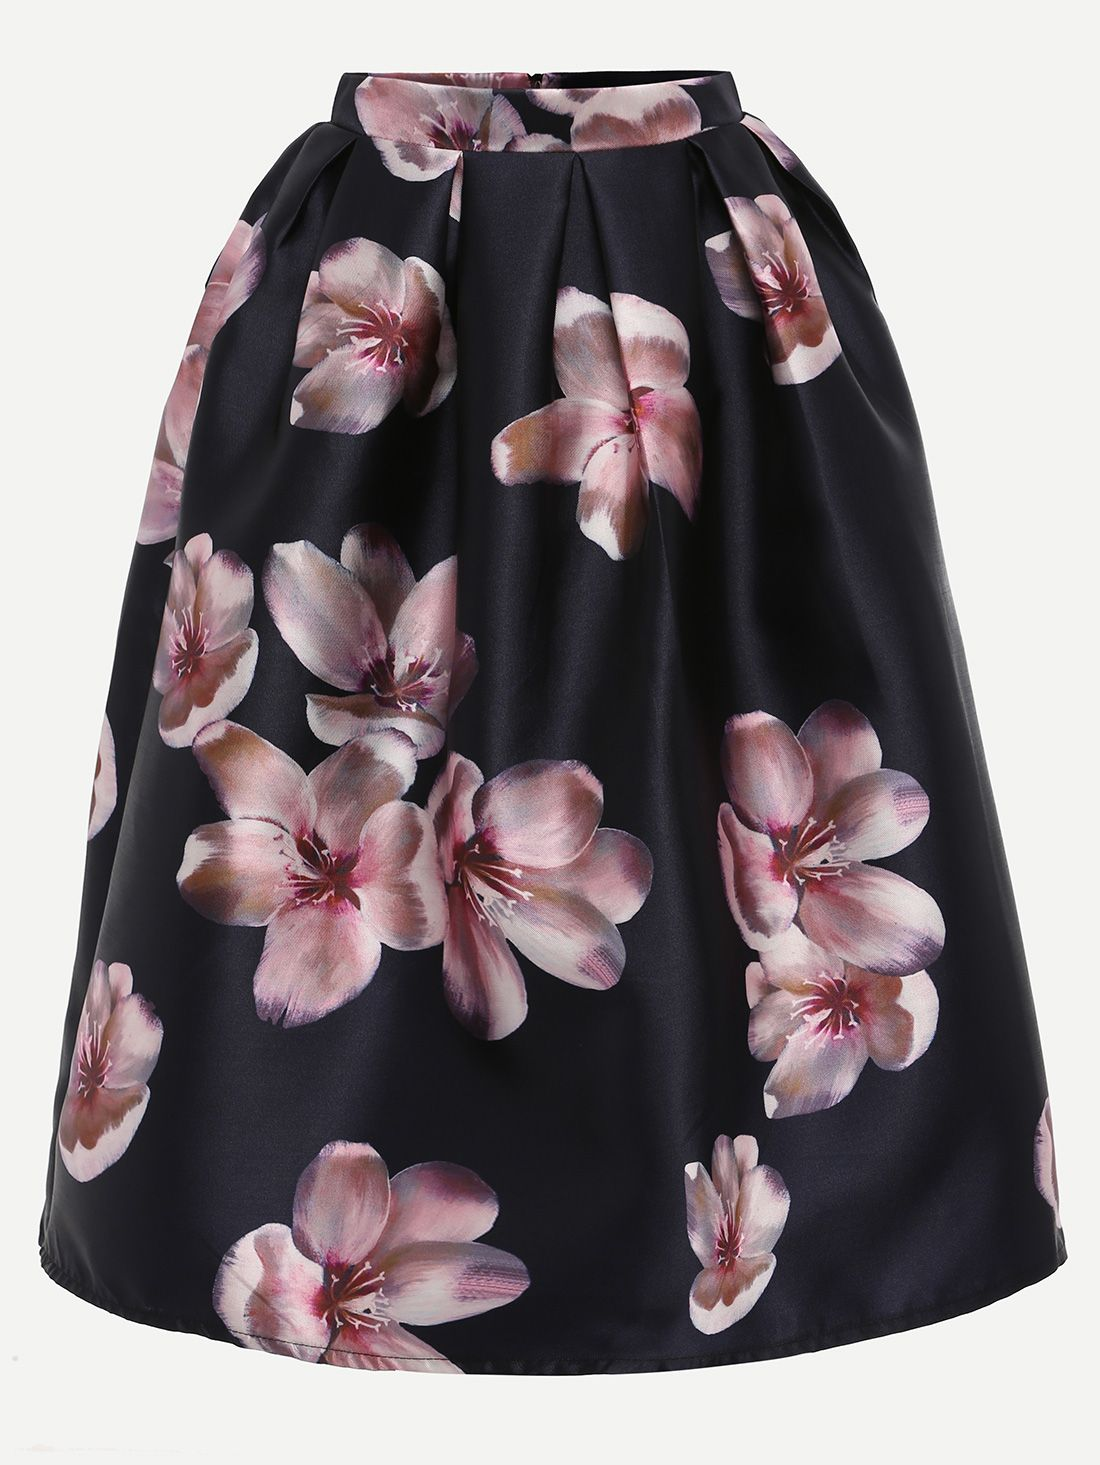 Shop Flower Print Box Pleated Midi Skirt - Black online. SheIn offers Flower Print Box Pleated Midi Skirt - Black & more to fit your fashionable needs.